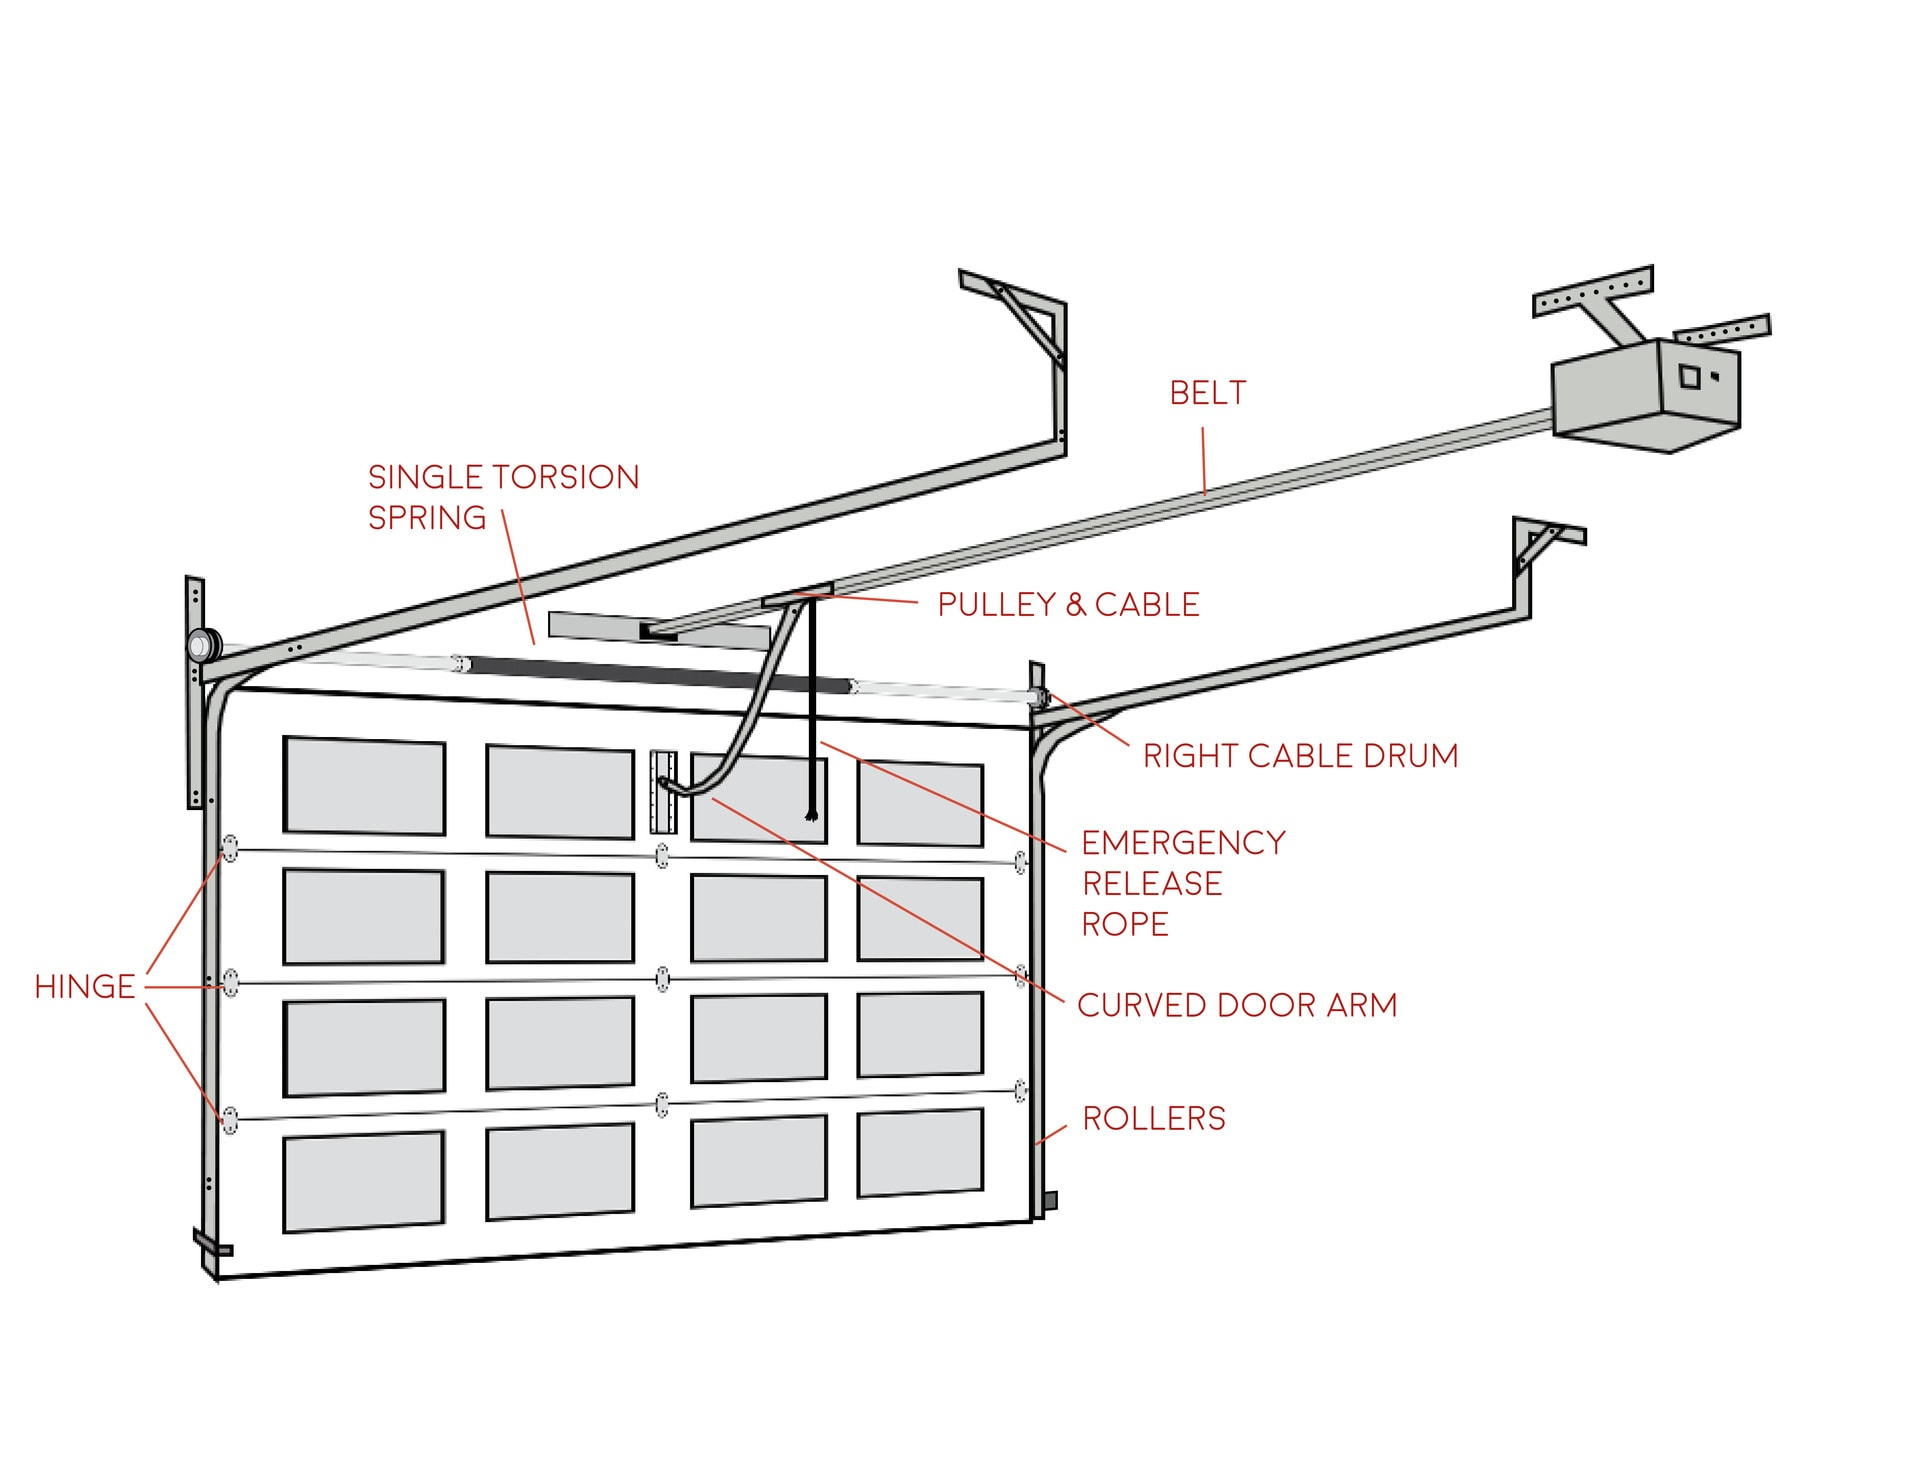 Wiring Diagram For Garage Door : Detailed garage door diagram g s doors